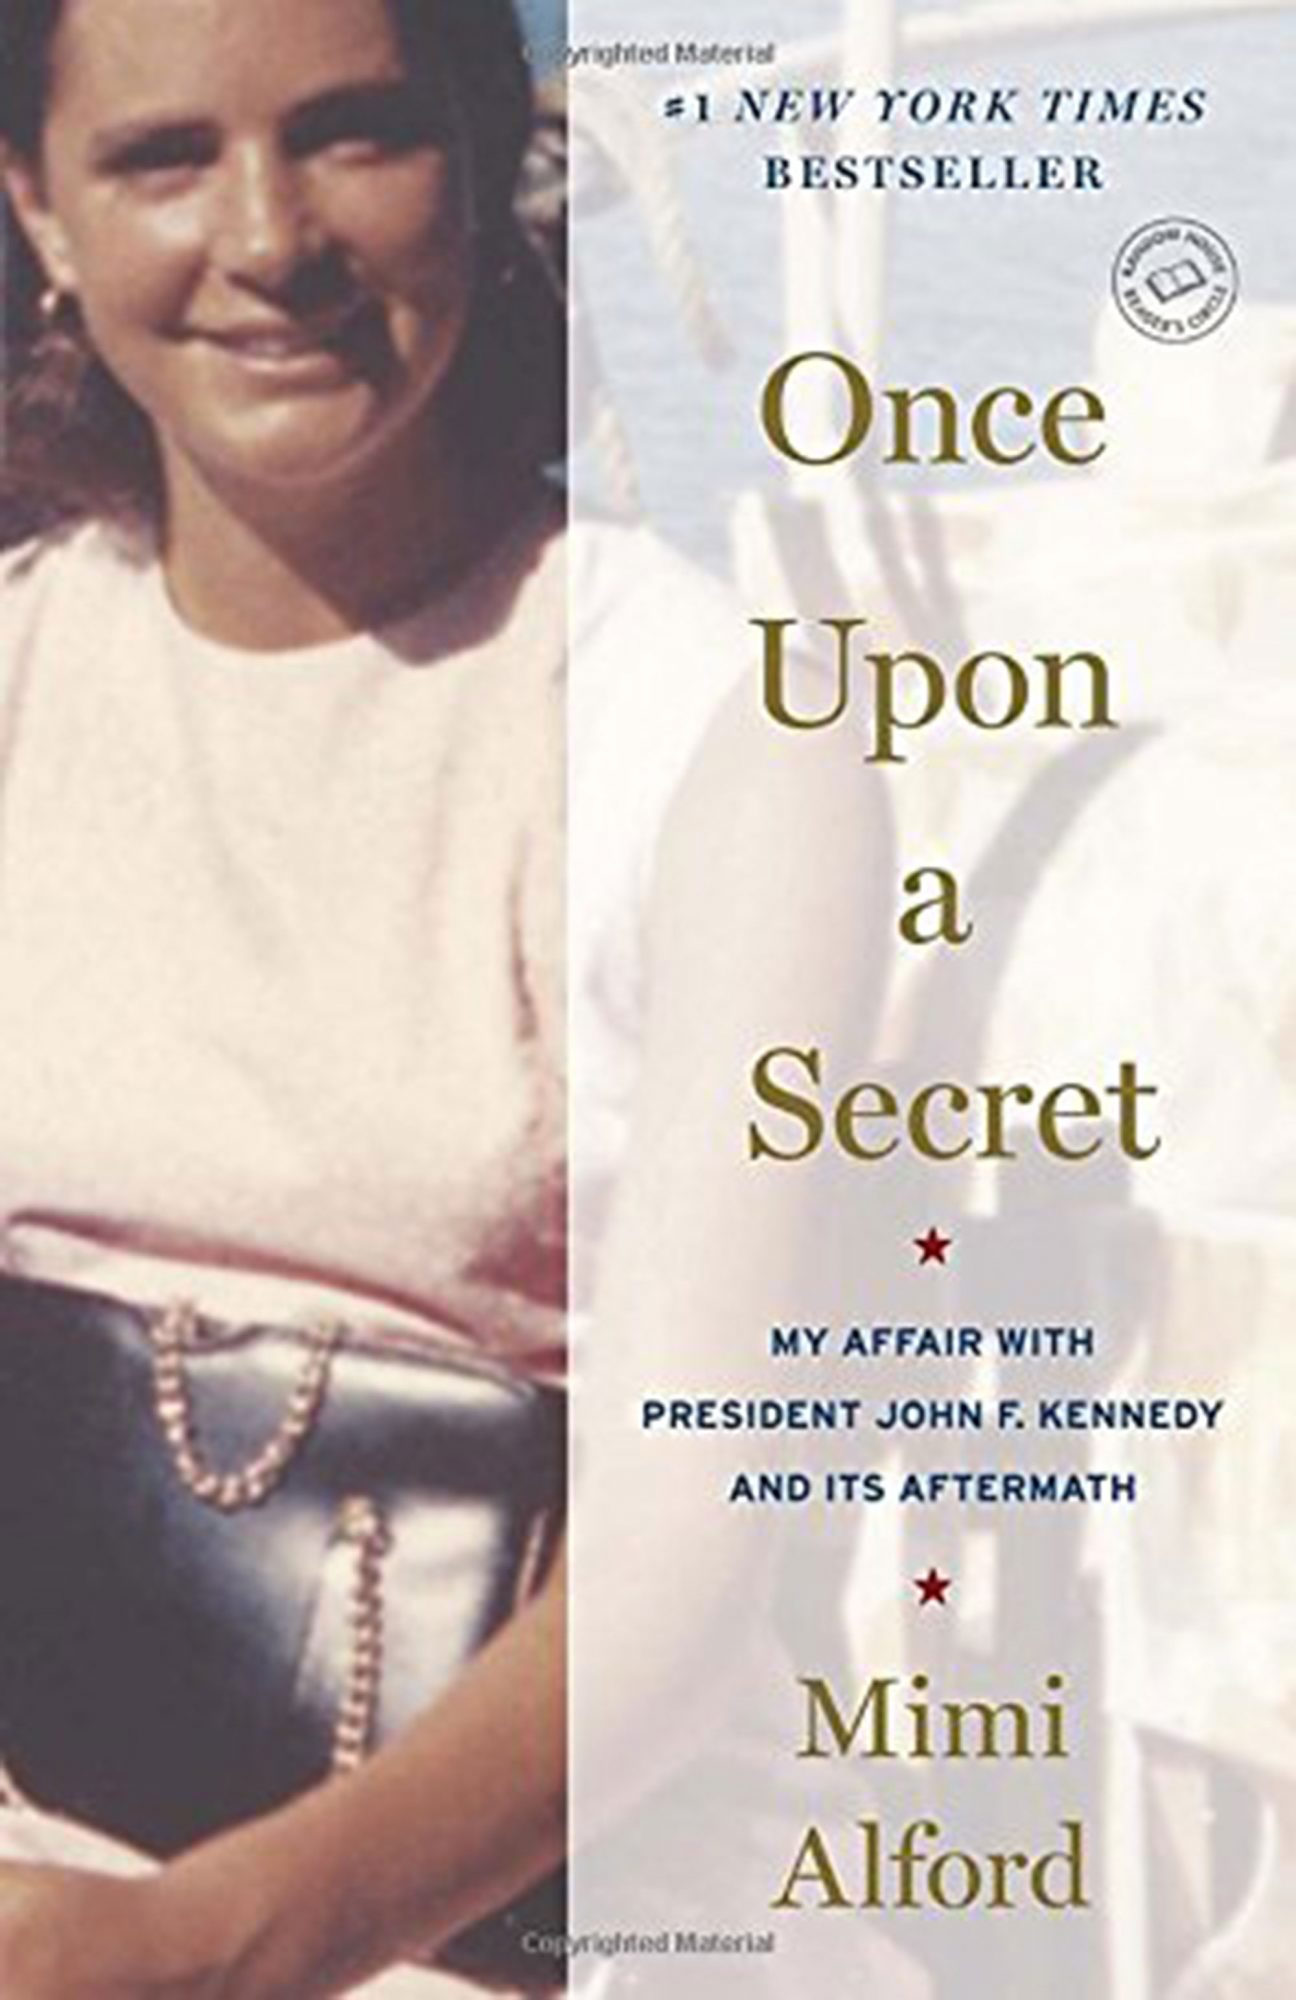 Once Upon A Secret: My Affair with President John F. Kennedy and Its Aftermath by Mimi Alford